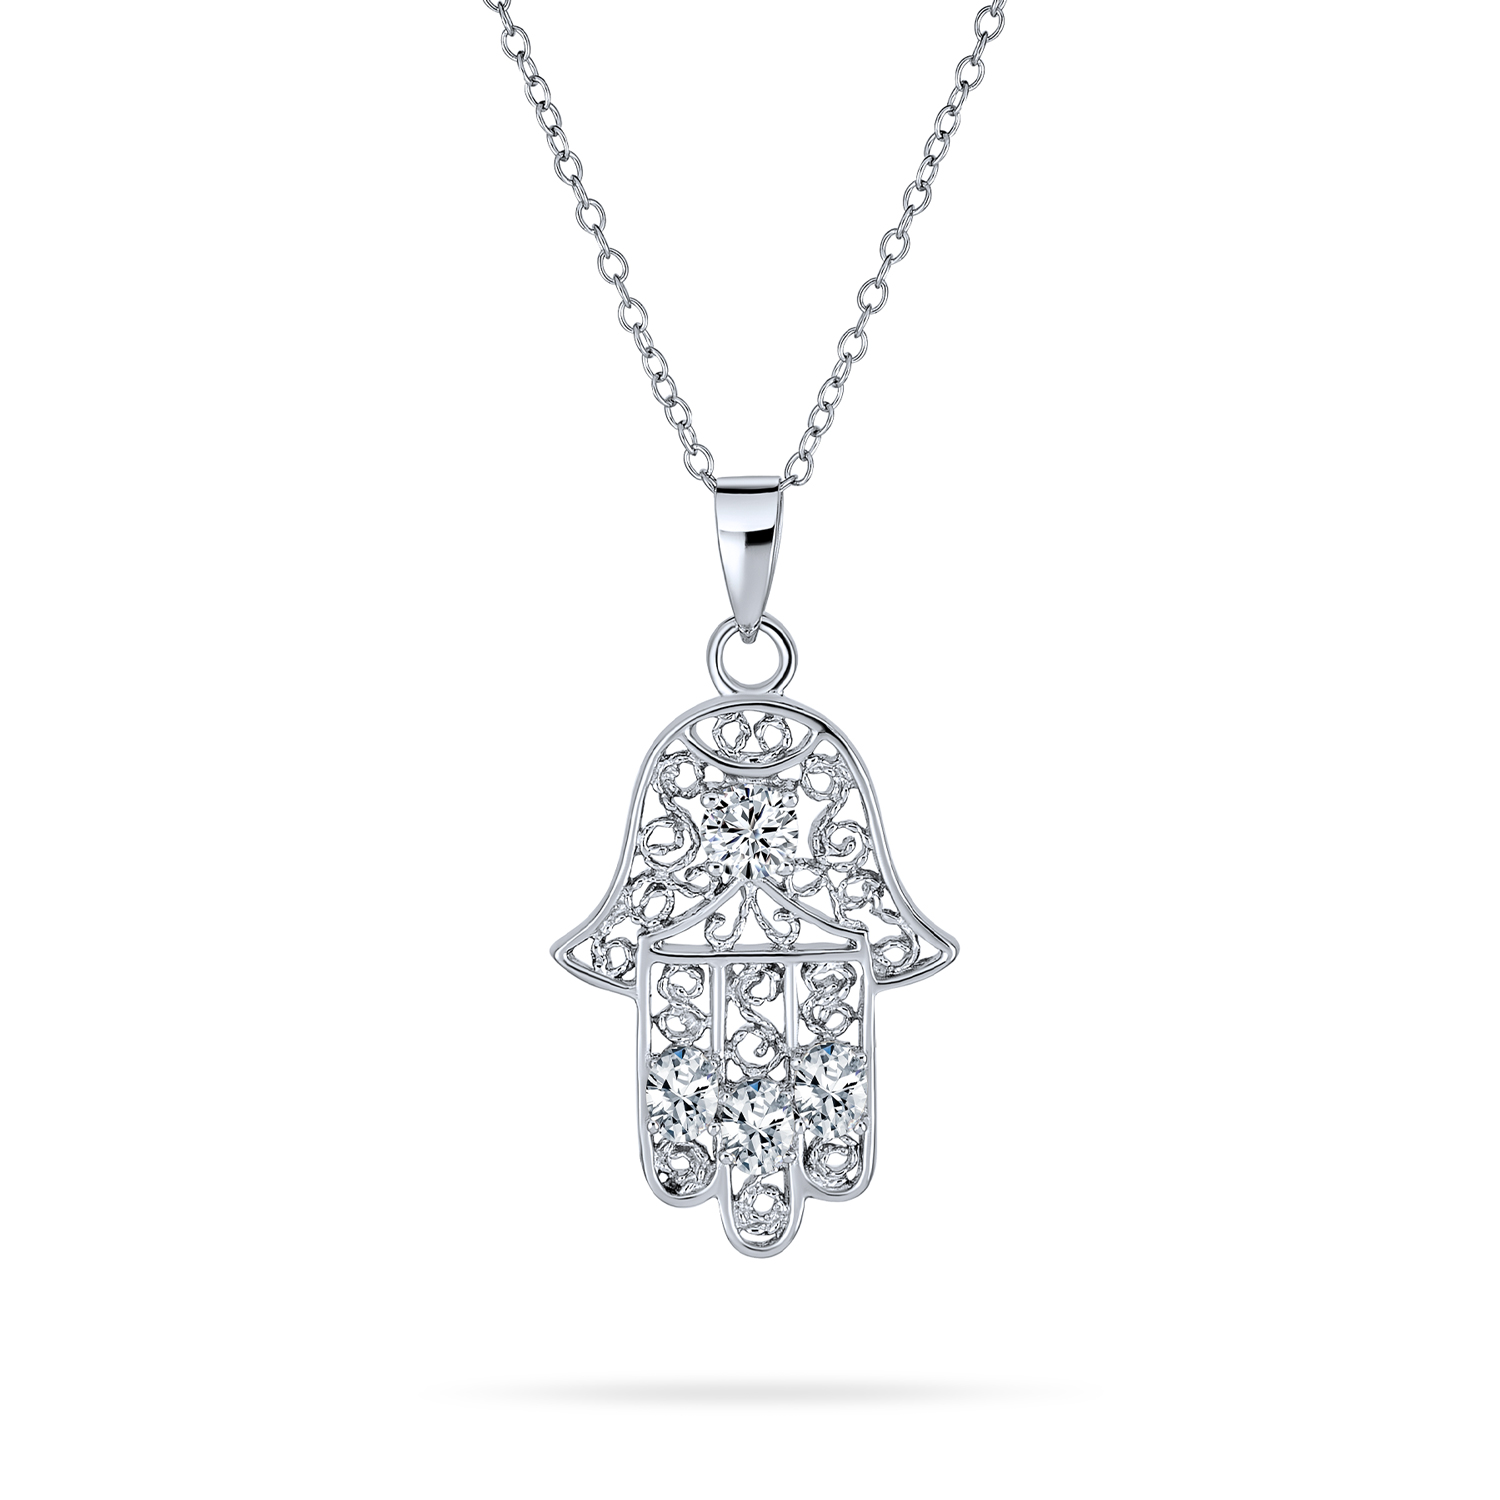 925 Solid Sterling Silver Filigree Evil Eye Hamsa Pendant  Charm with 18 inch Cable Necklace Jewelry